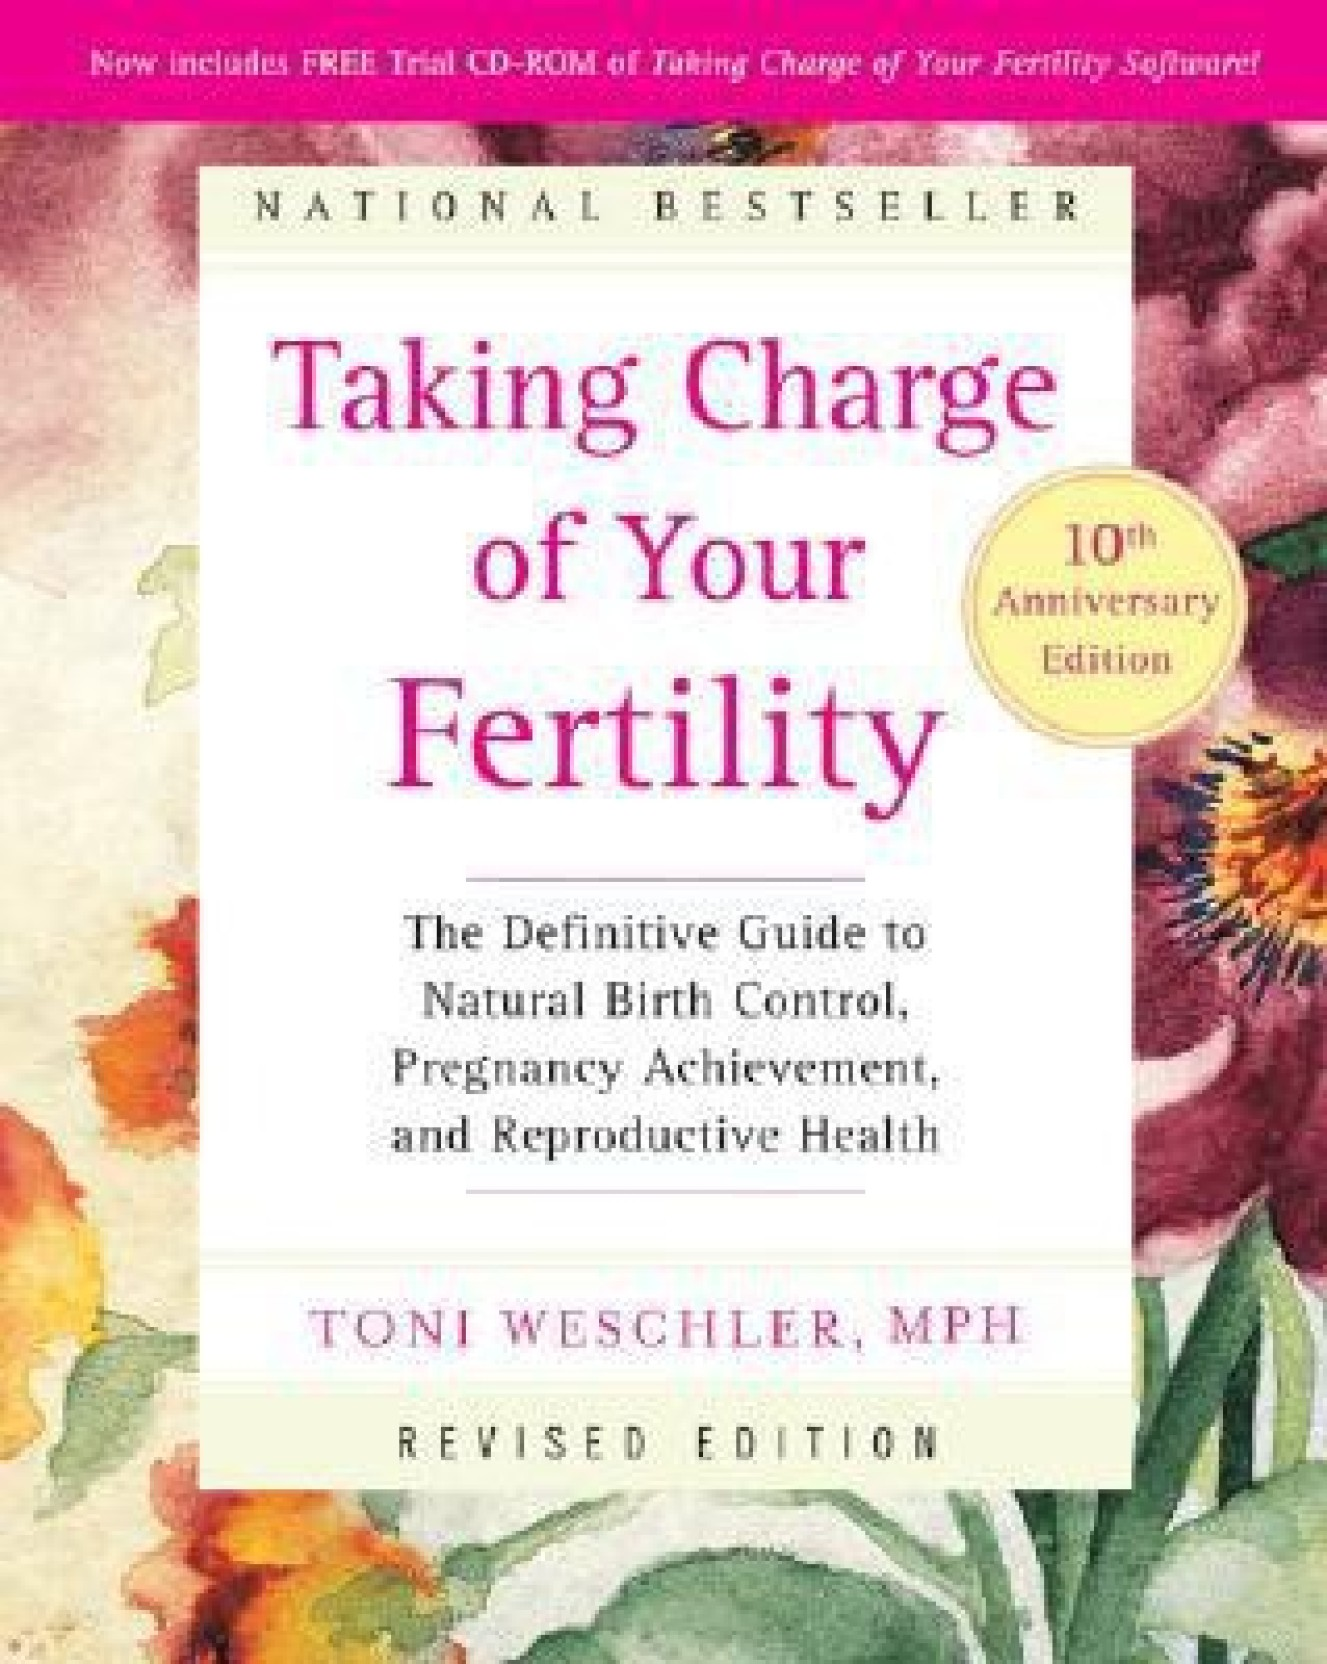 TAKING CHARGE OF YOUR FERTILITY, 10th ANNIVERSARY EDITION. Share